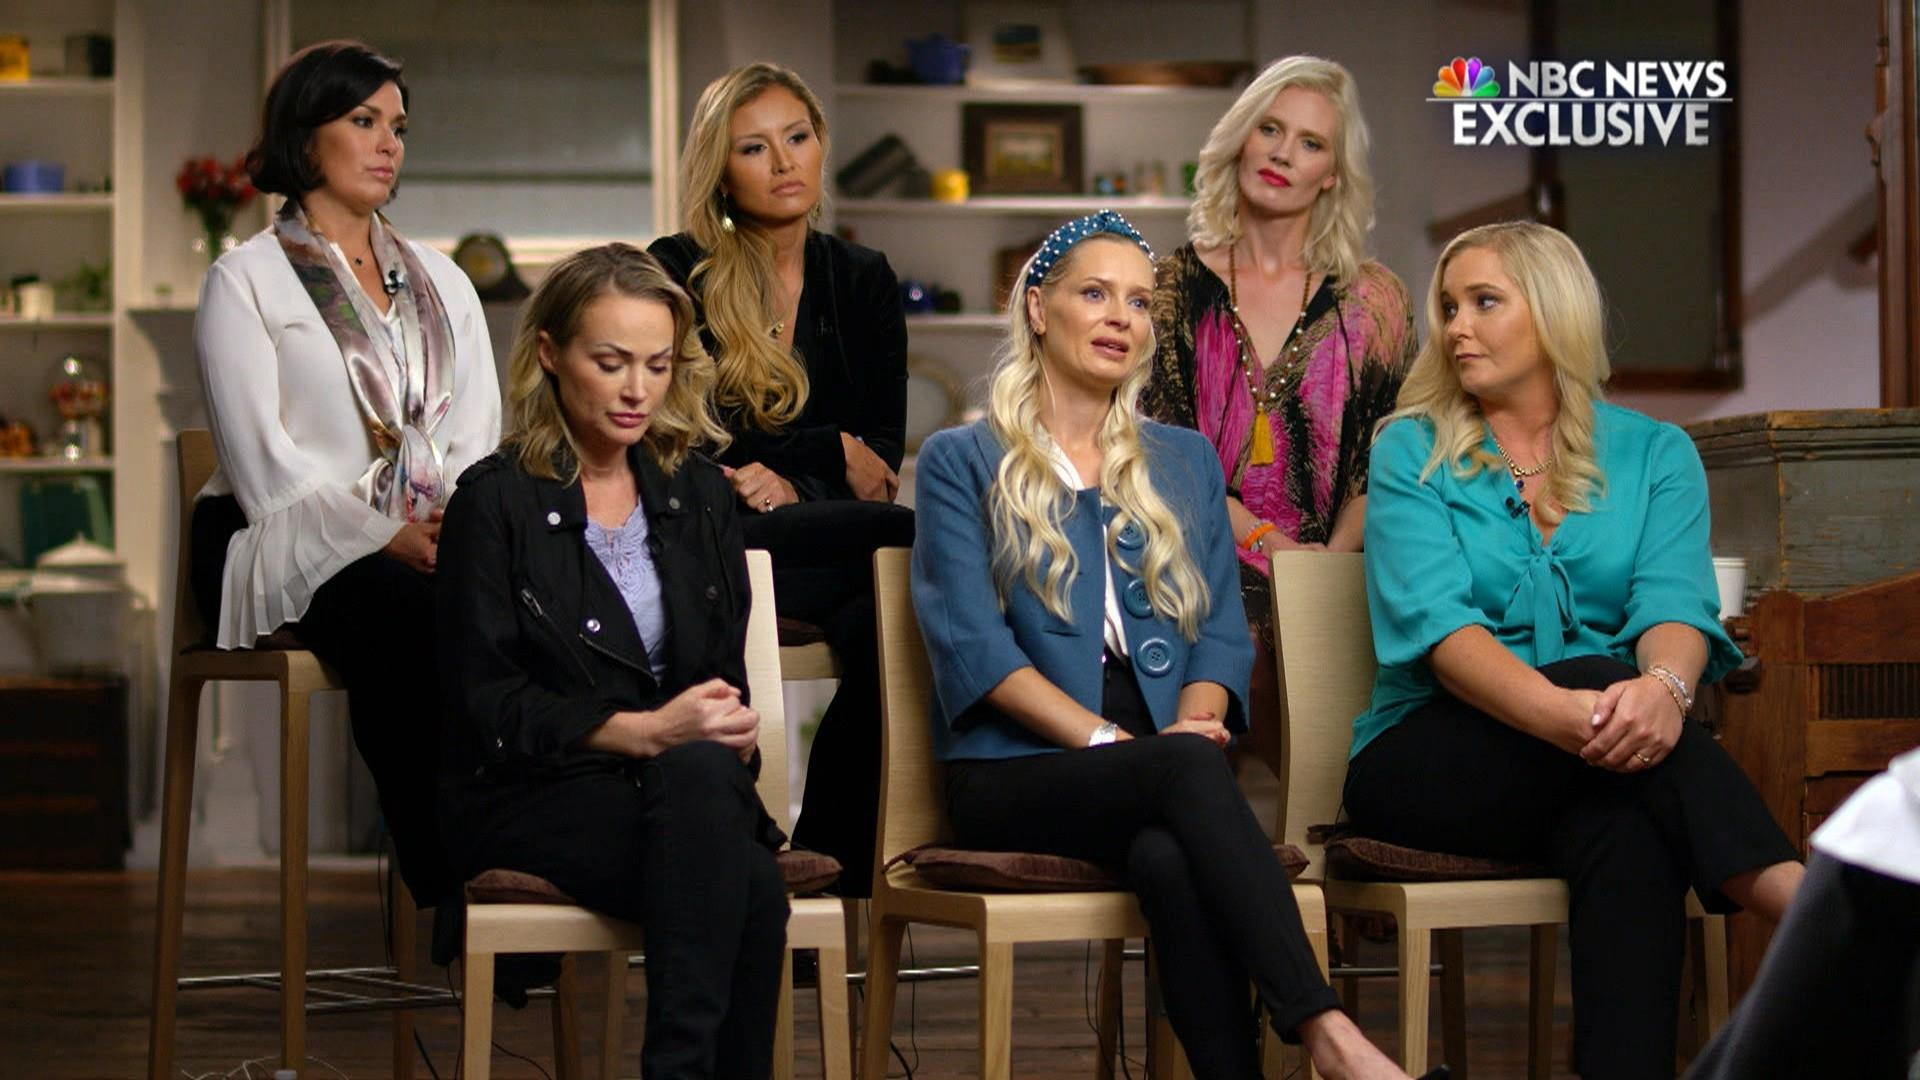 Jeffrey Epstein Accusers Detail Abuse In Nbc News Exclusive